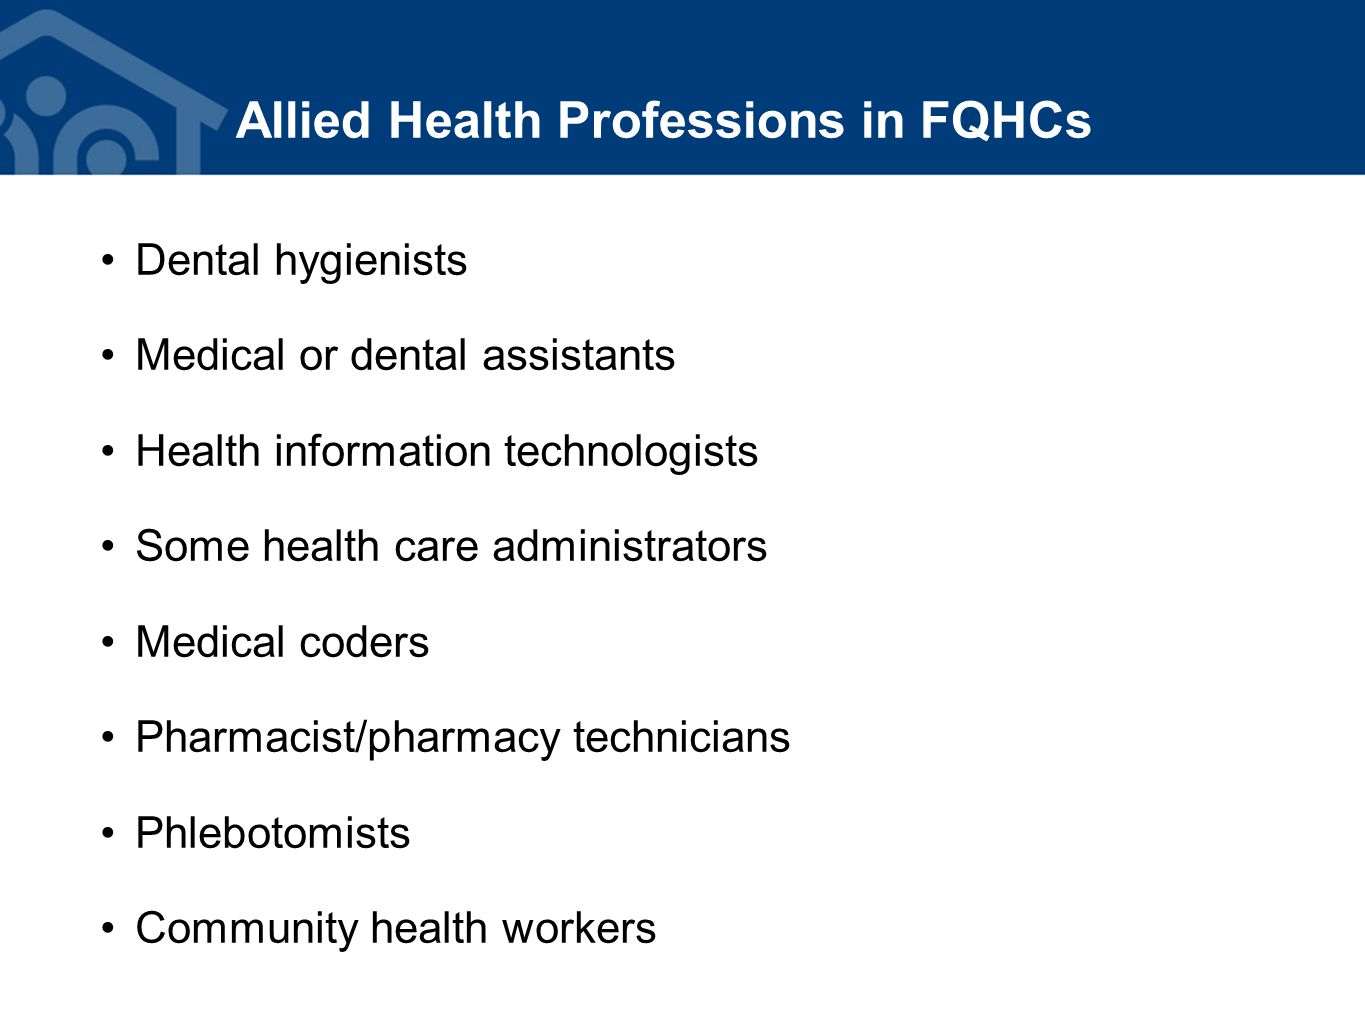 Allied Health Professions in FQHCs Dental hygienists Medical or dental assistants Health information technologists Some health care administrators Medical coders Pharmacist/pharmacy technicians Phlebotomists Community health workers